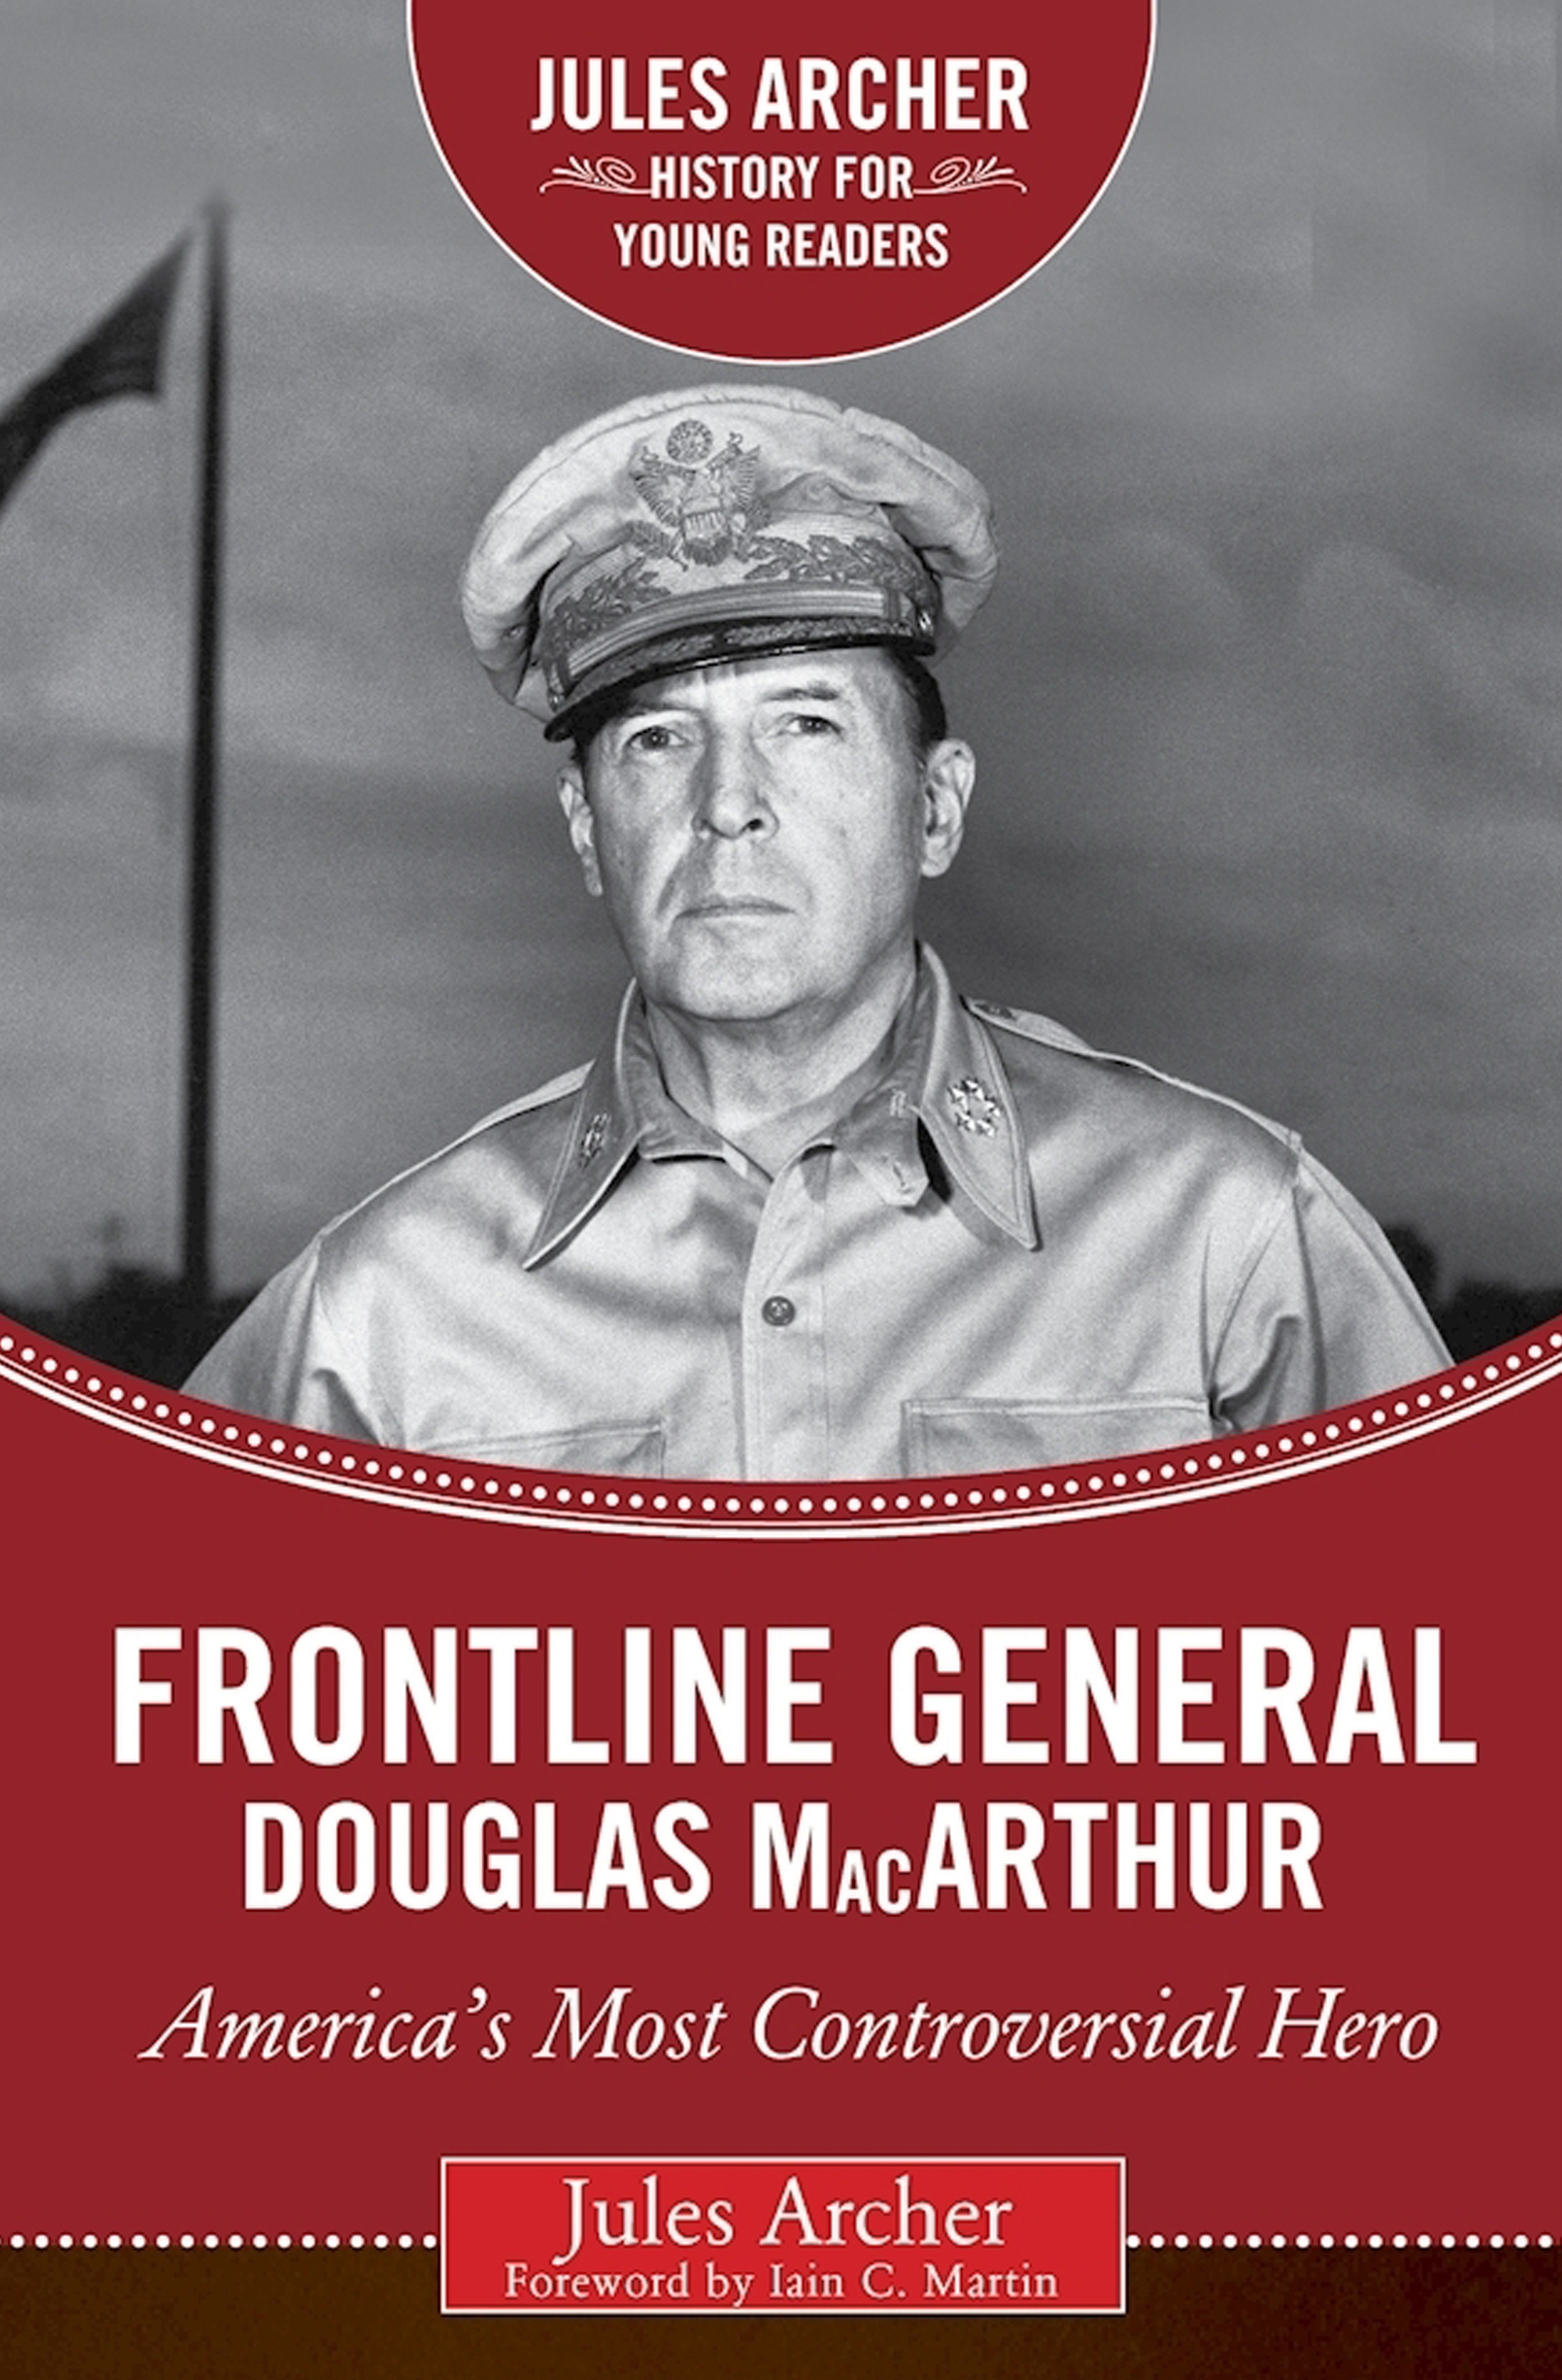 Frontline General: Douglas MacArthur America's Most Controversial Hero